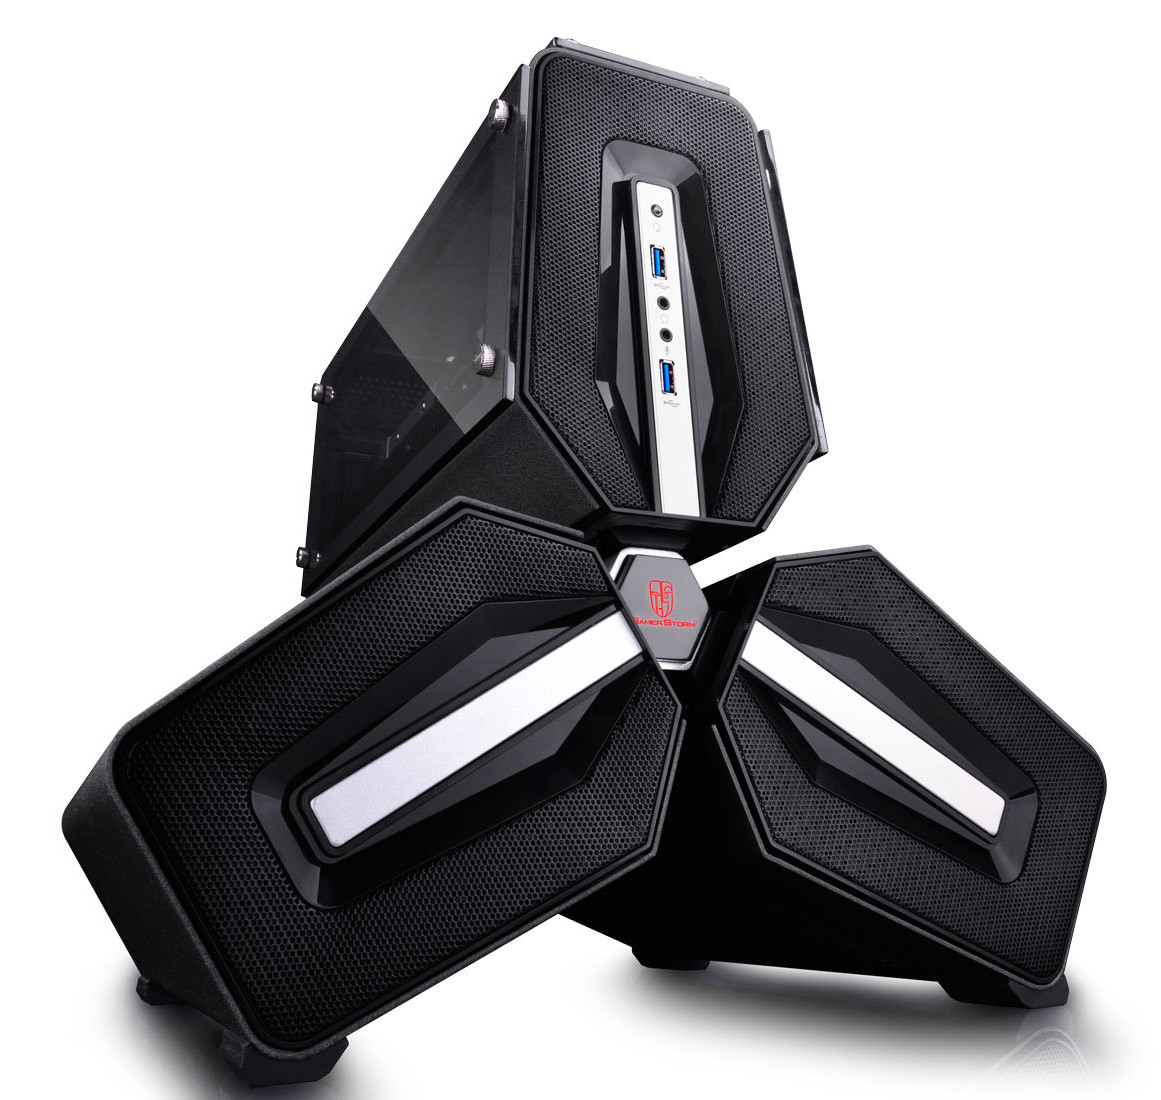 Cool Pc Cases With Glass Panels